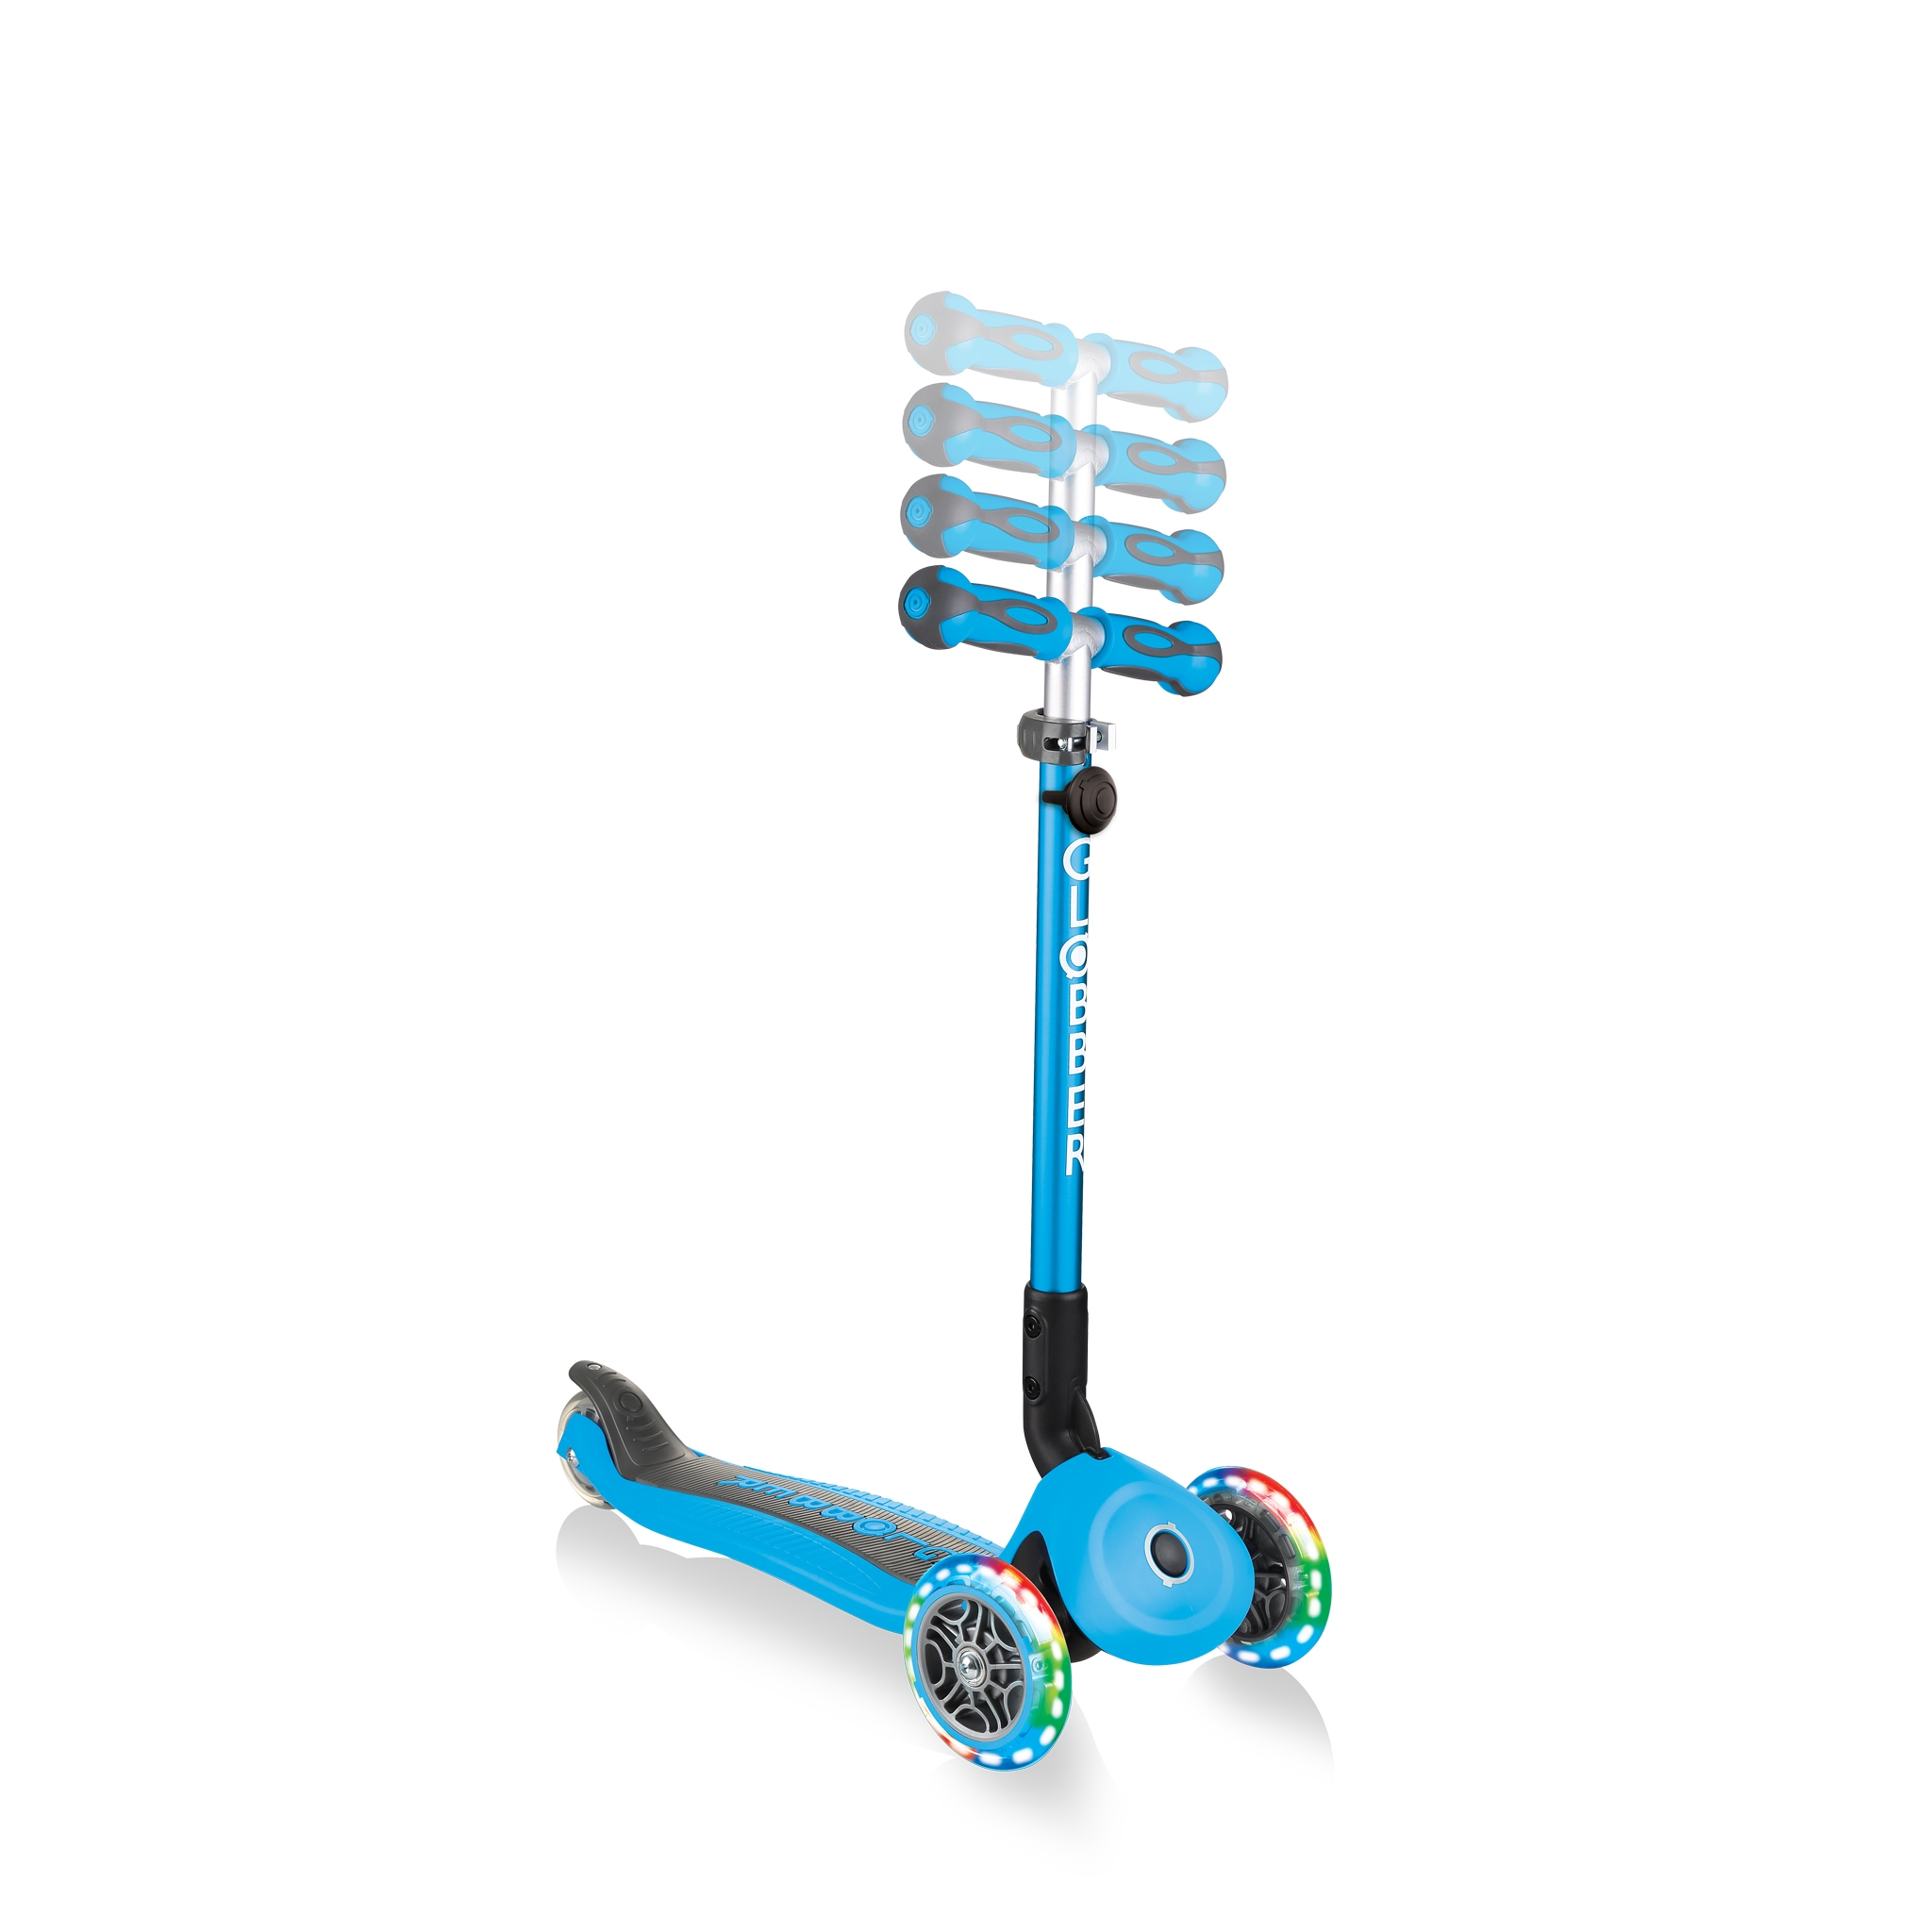 GO-UP-DELUXE-LIGHTS-ride-on-walking-bike-scooter-with-4-height-adjustable-T-bar-and-light-up-wheels-sky-blue 4